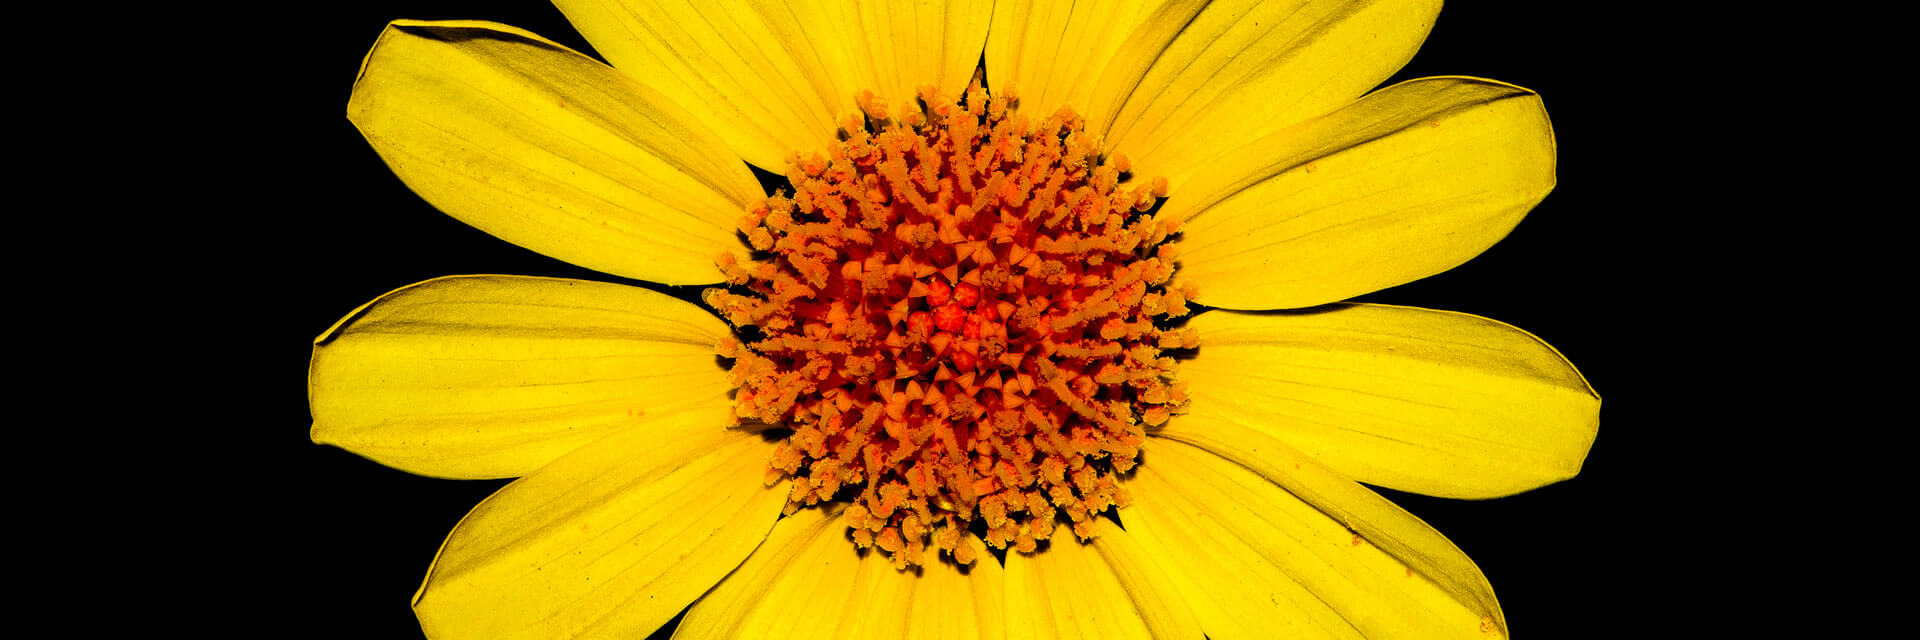 Close up of the orange center of a yellow flower